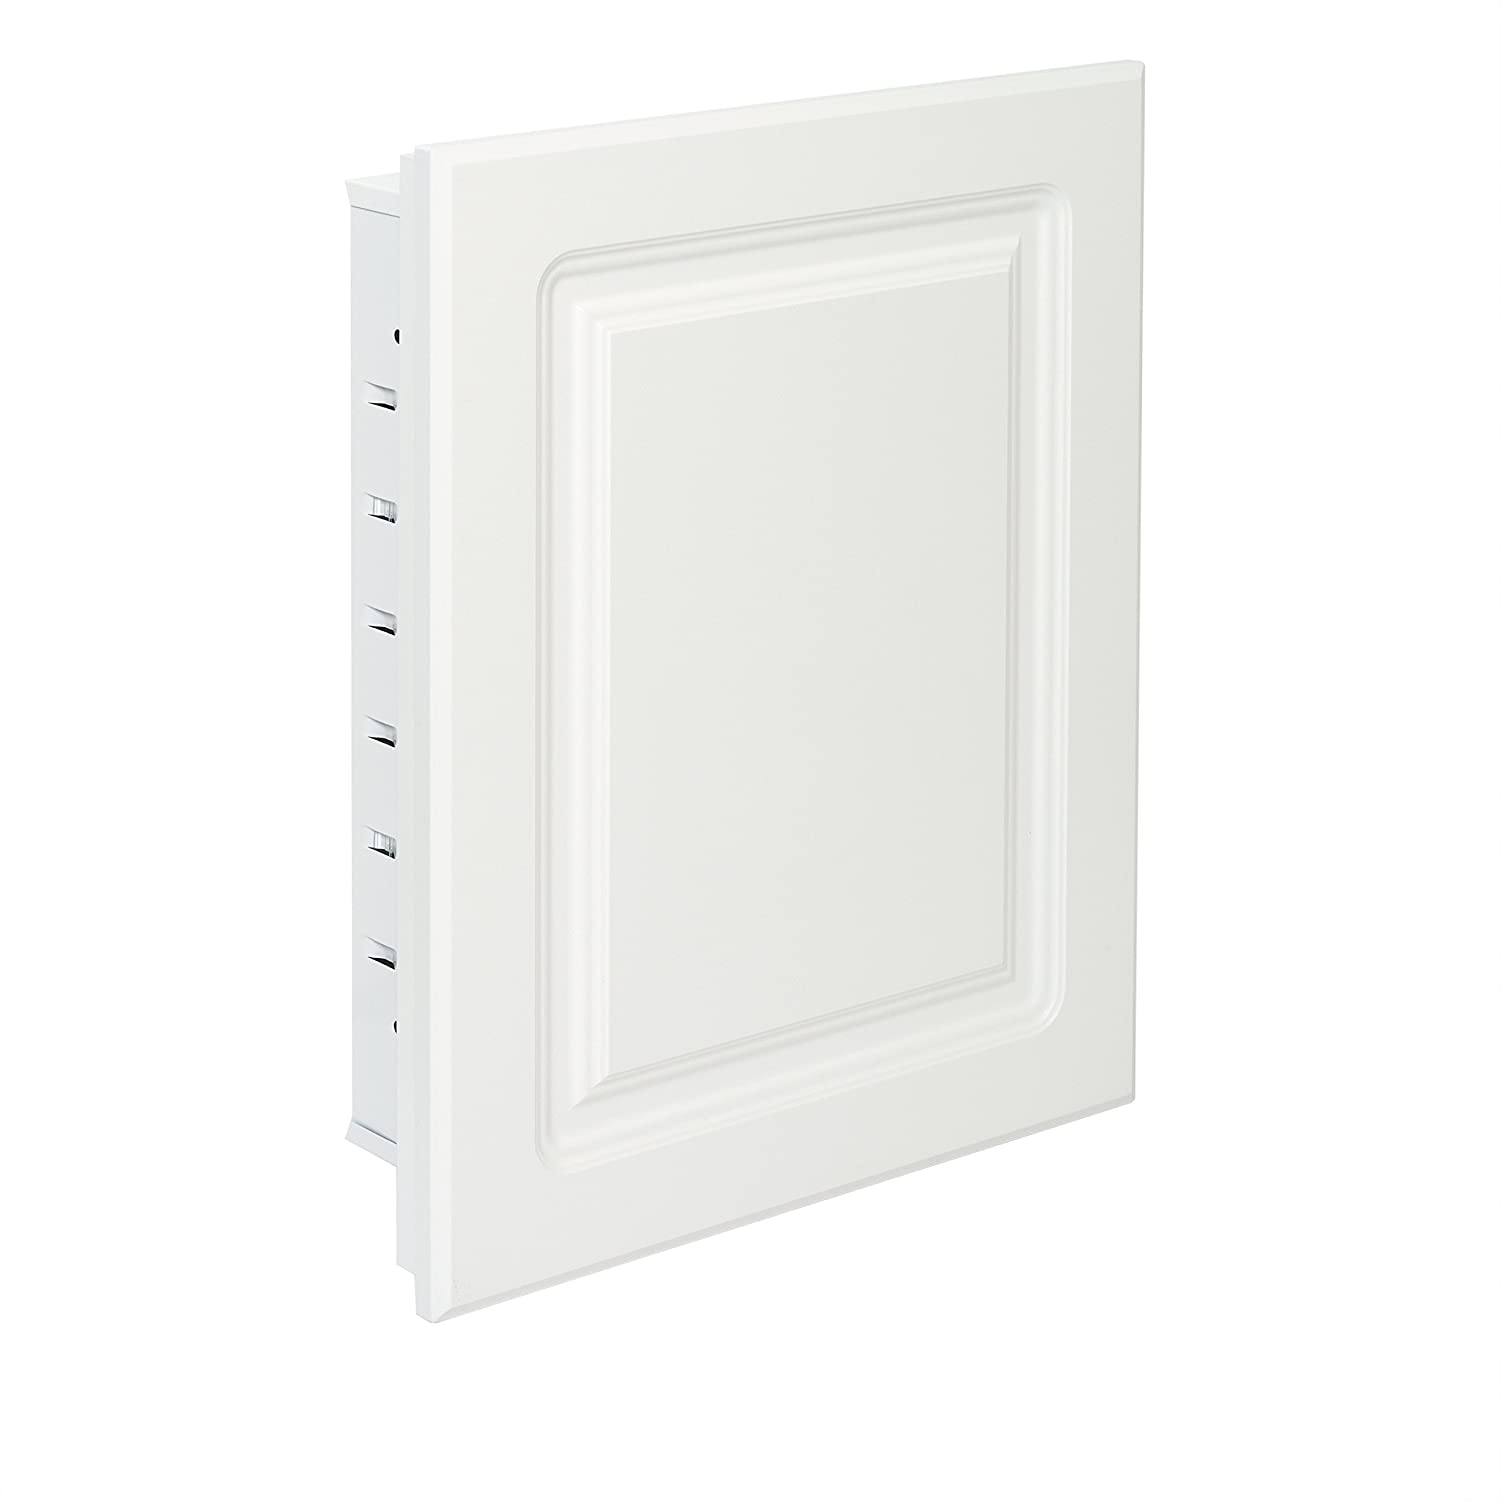 American Pride G9612RPR1 G9612RPR1-Recessed White Raised Panel Door, Steel Body Medicine Cabinet 16 x 20